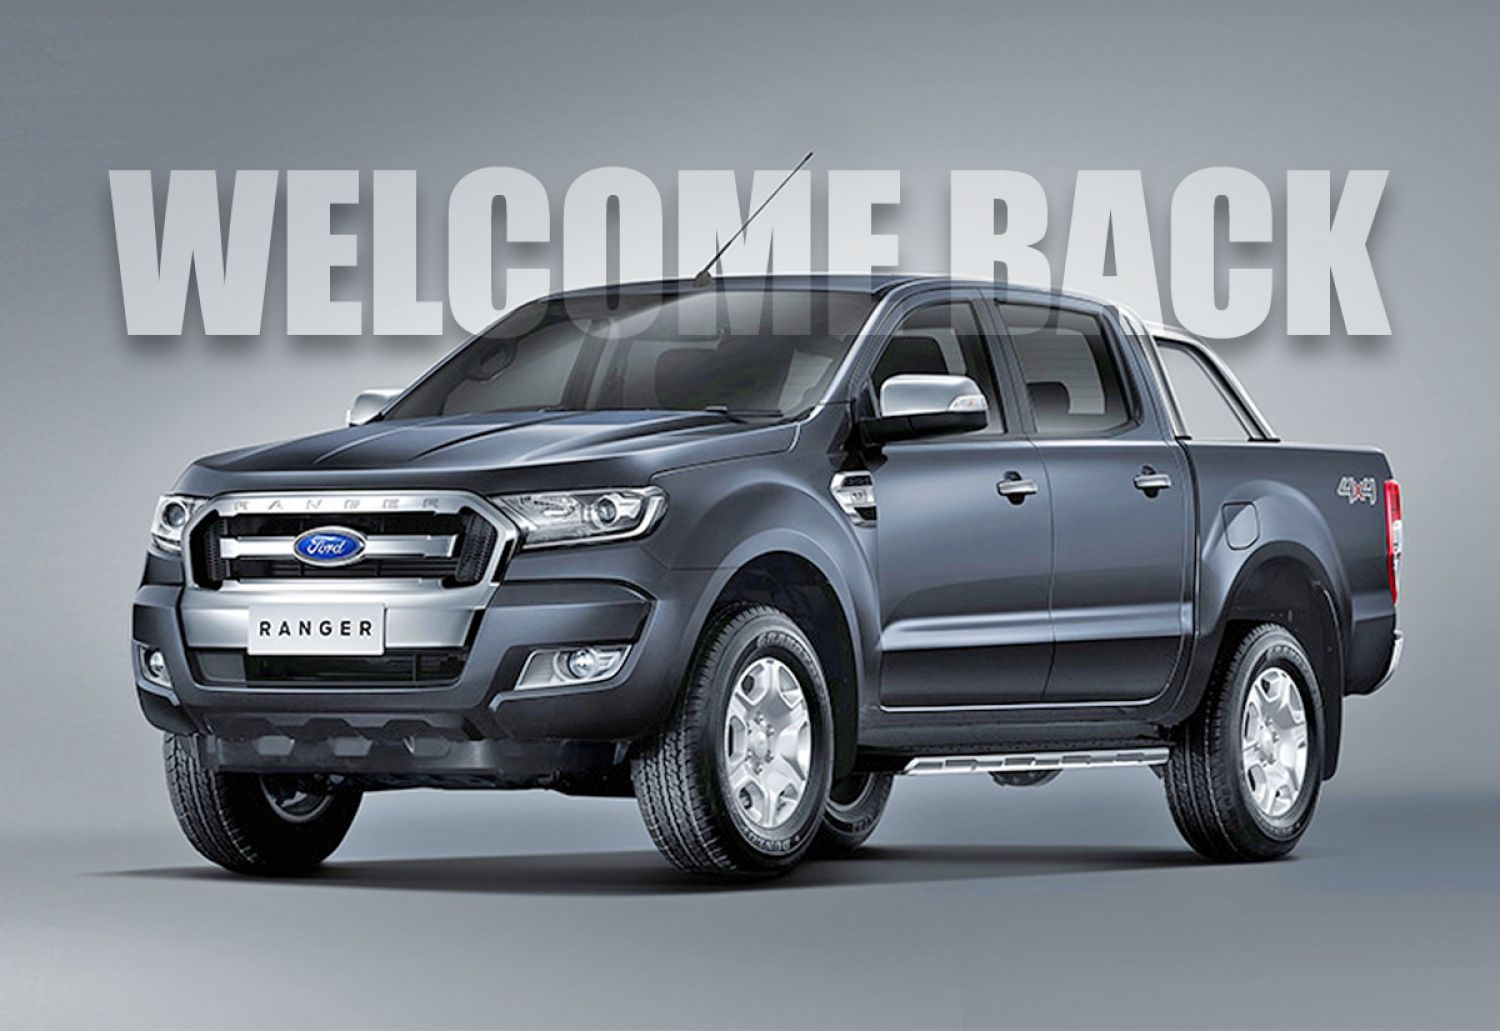 New Ford Small Truck Pickup Trucks Check More At Http Besthostingg